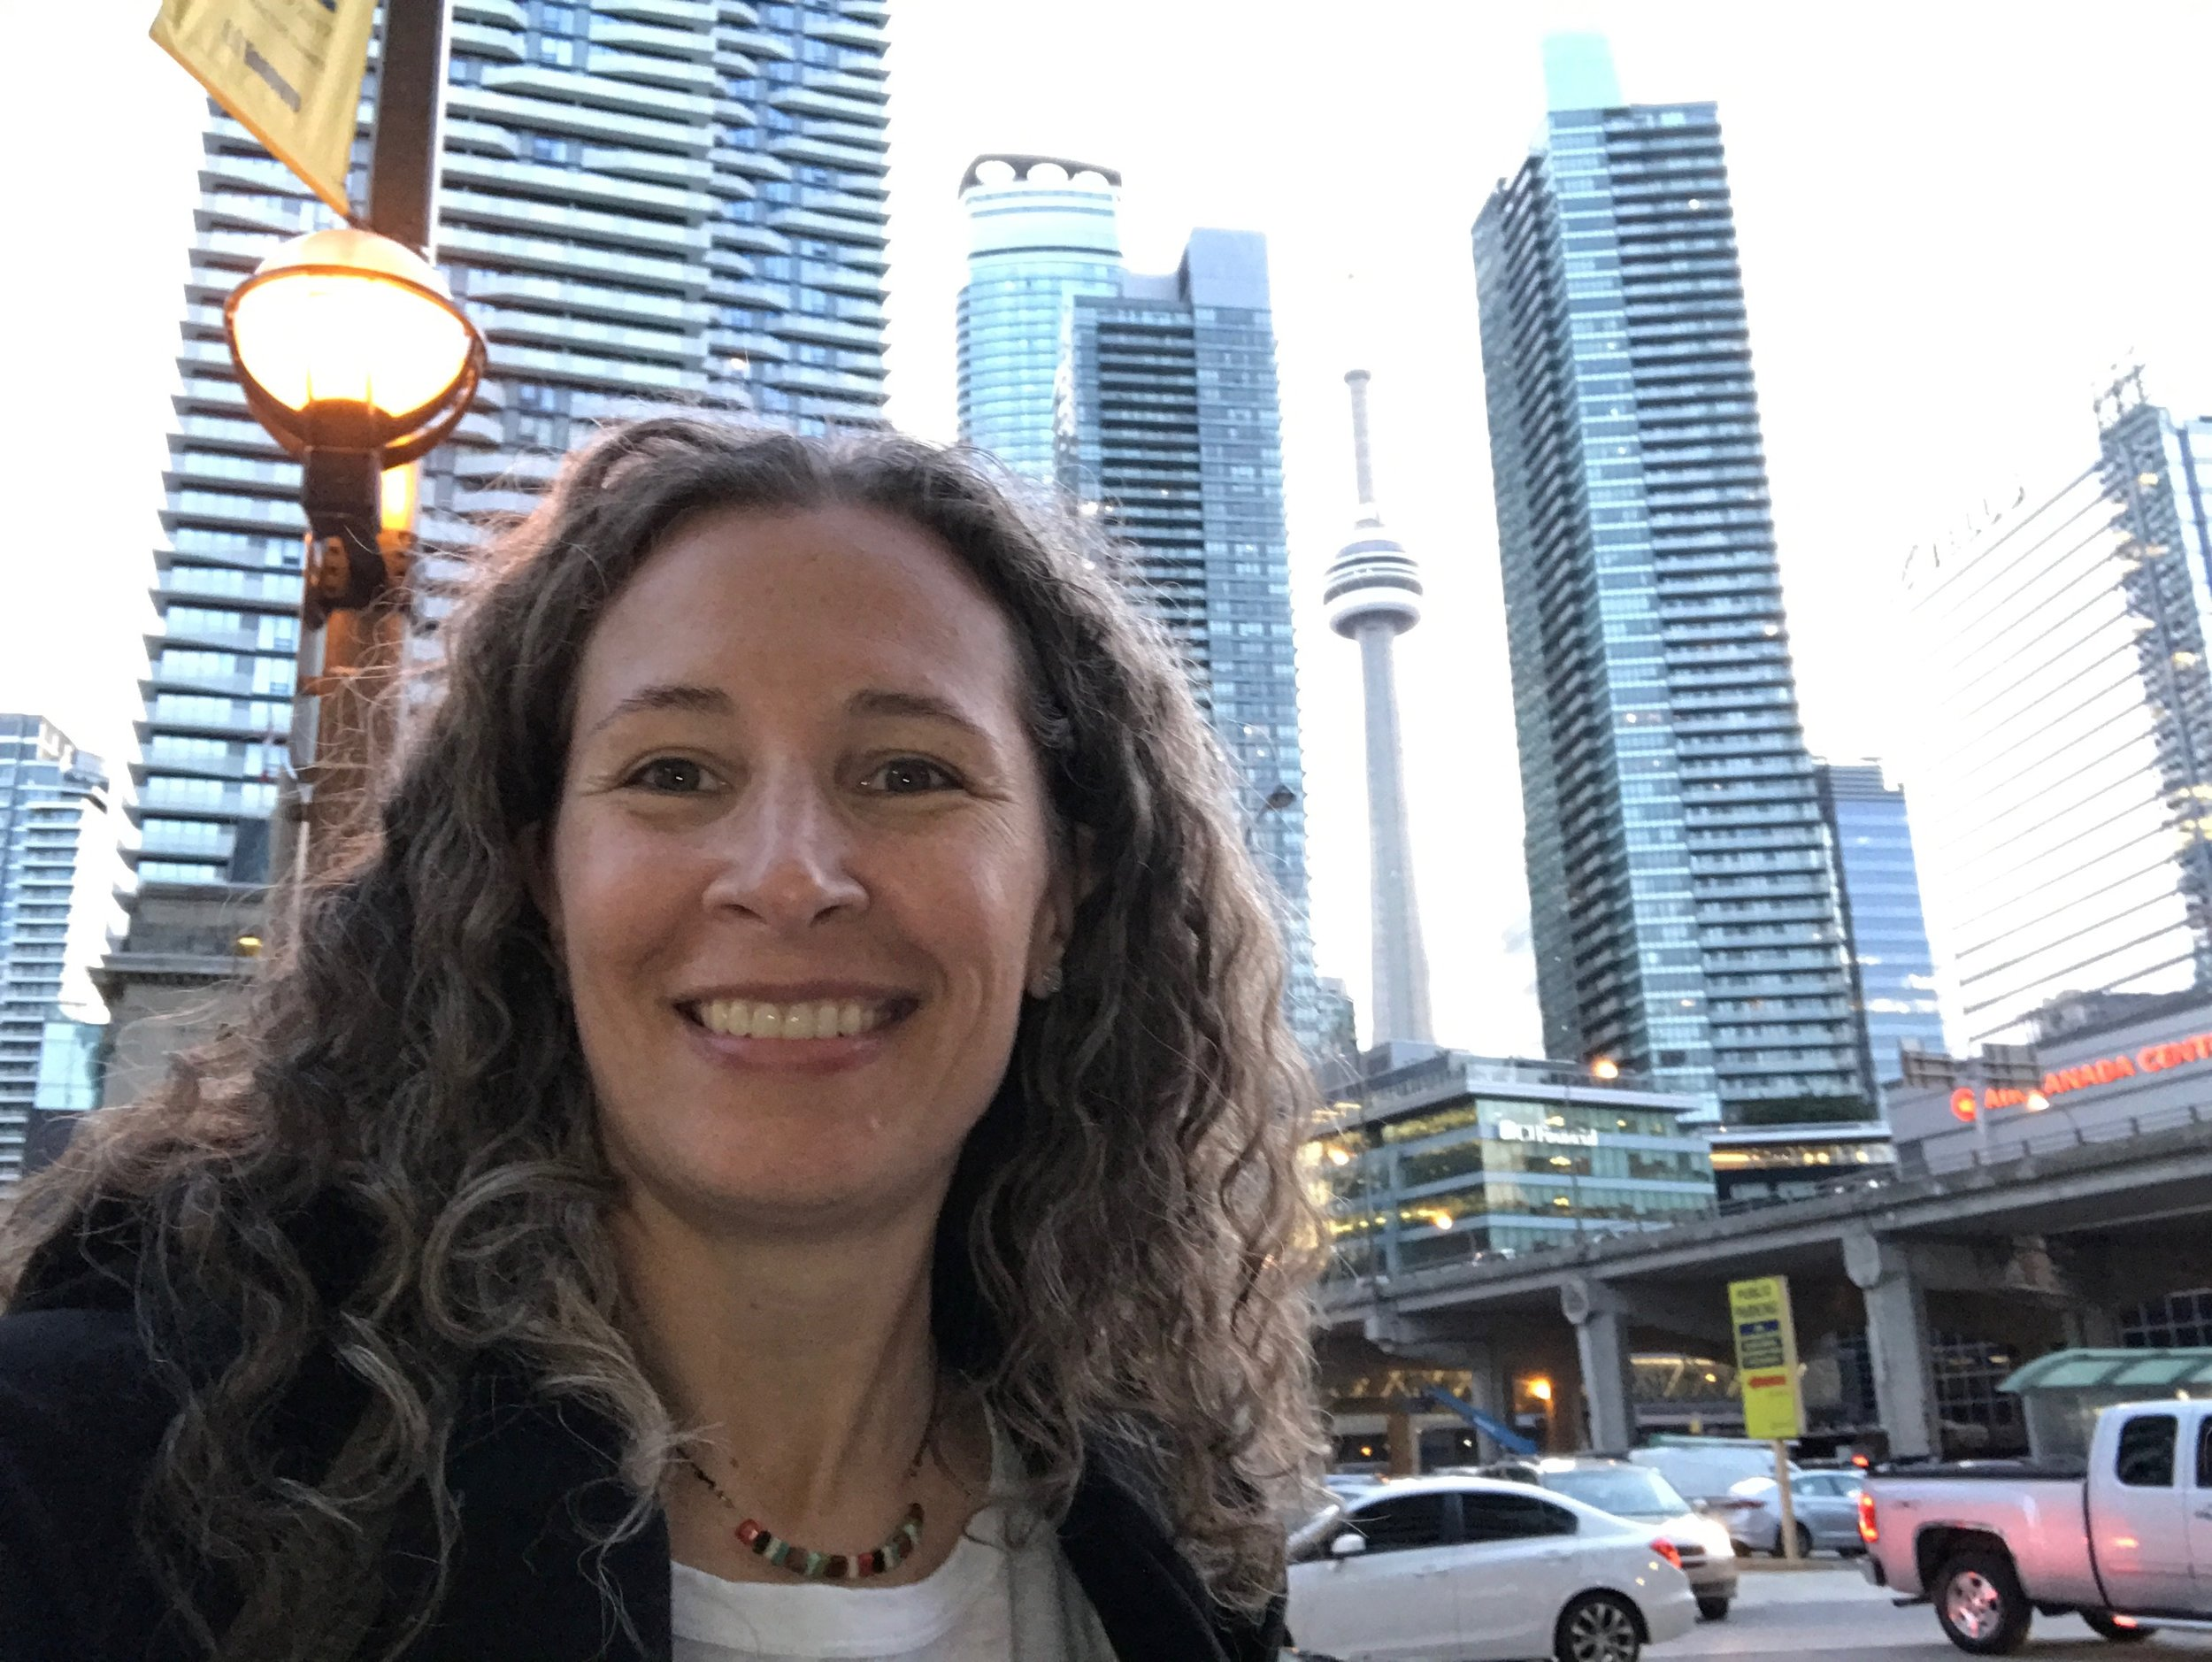 Toronto is beautiful! Behind me is the CN Tower which was completed in 1976 and held the record for the tallest free-standing structure for 5 years.